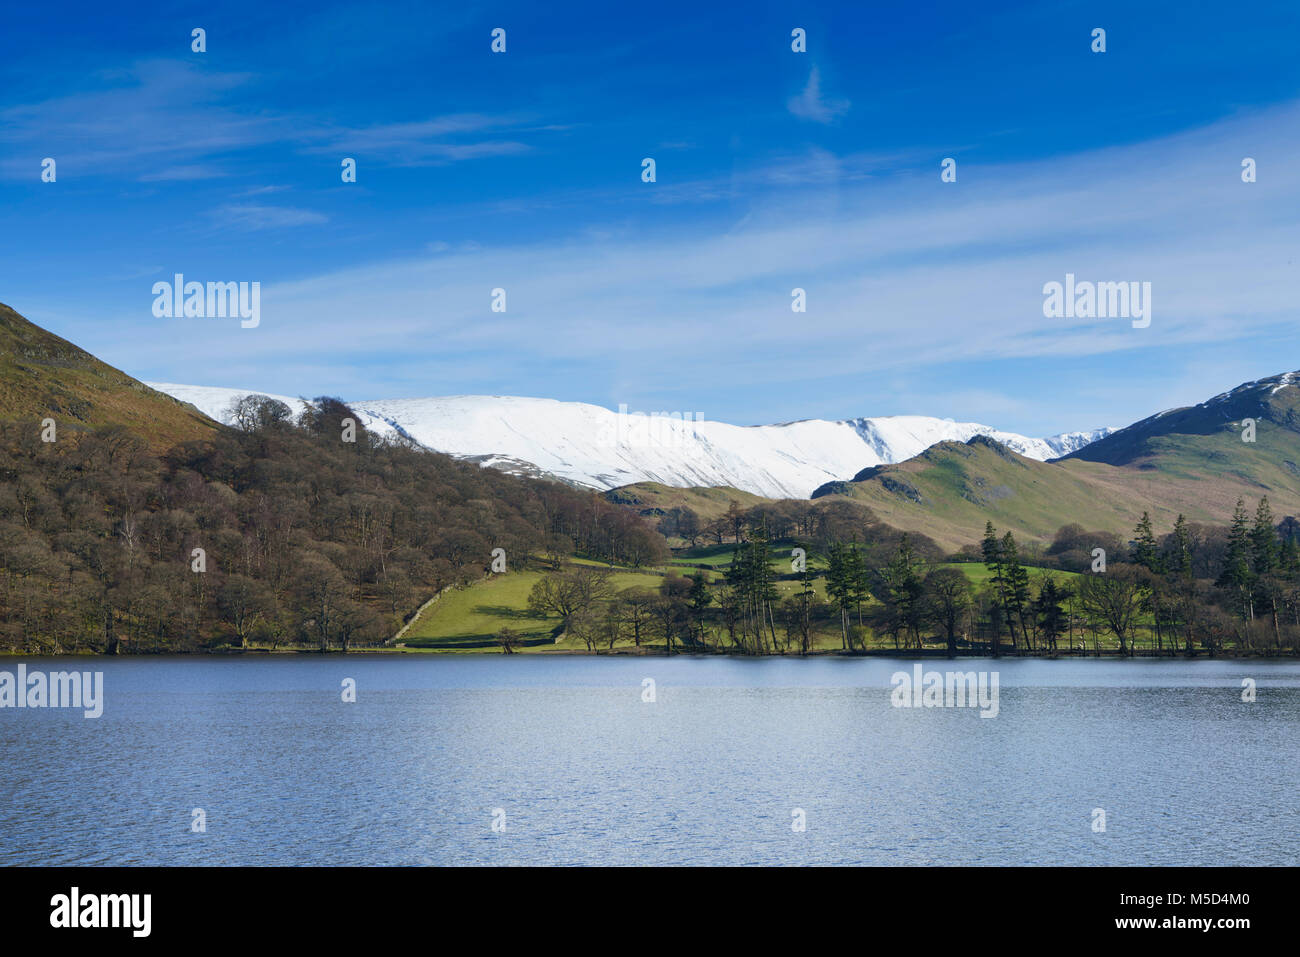 Lake District, Cumbria, England - Ullswater in early spring. - Stock Image